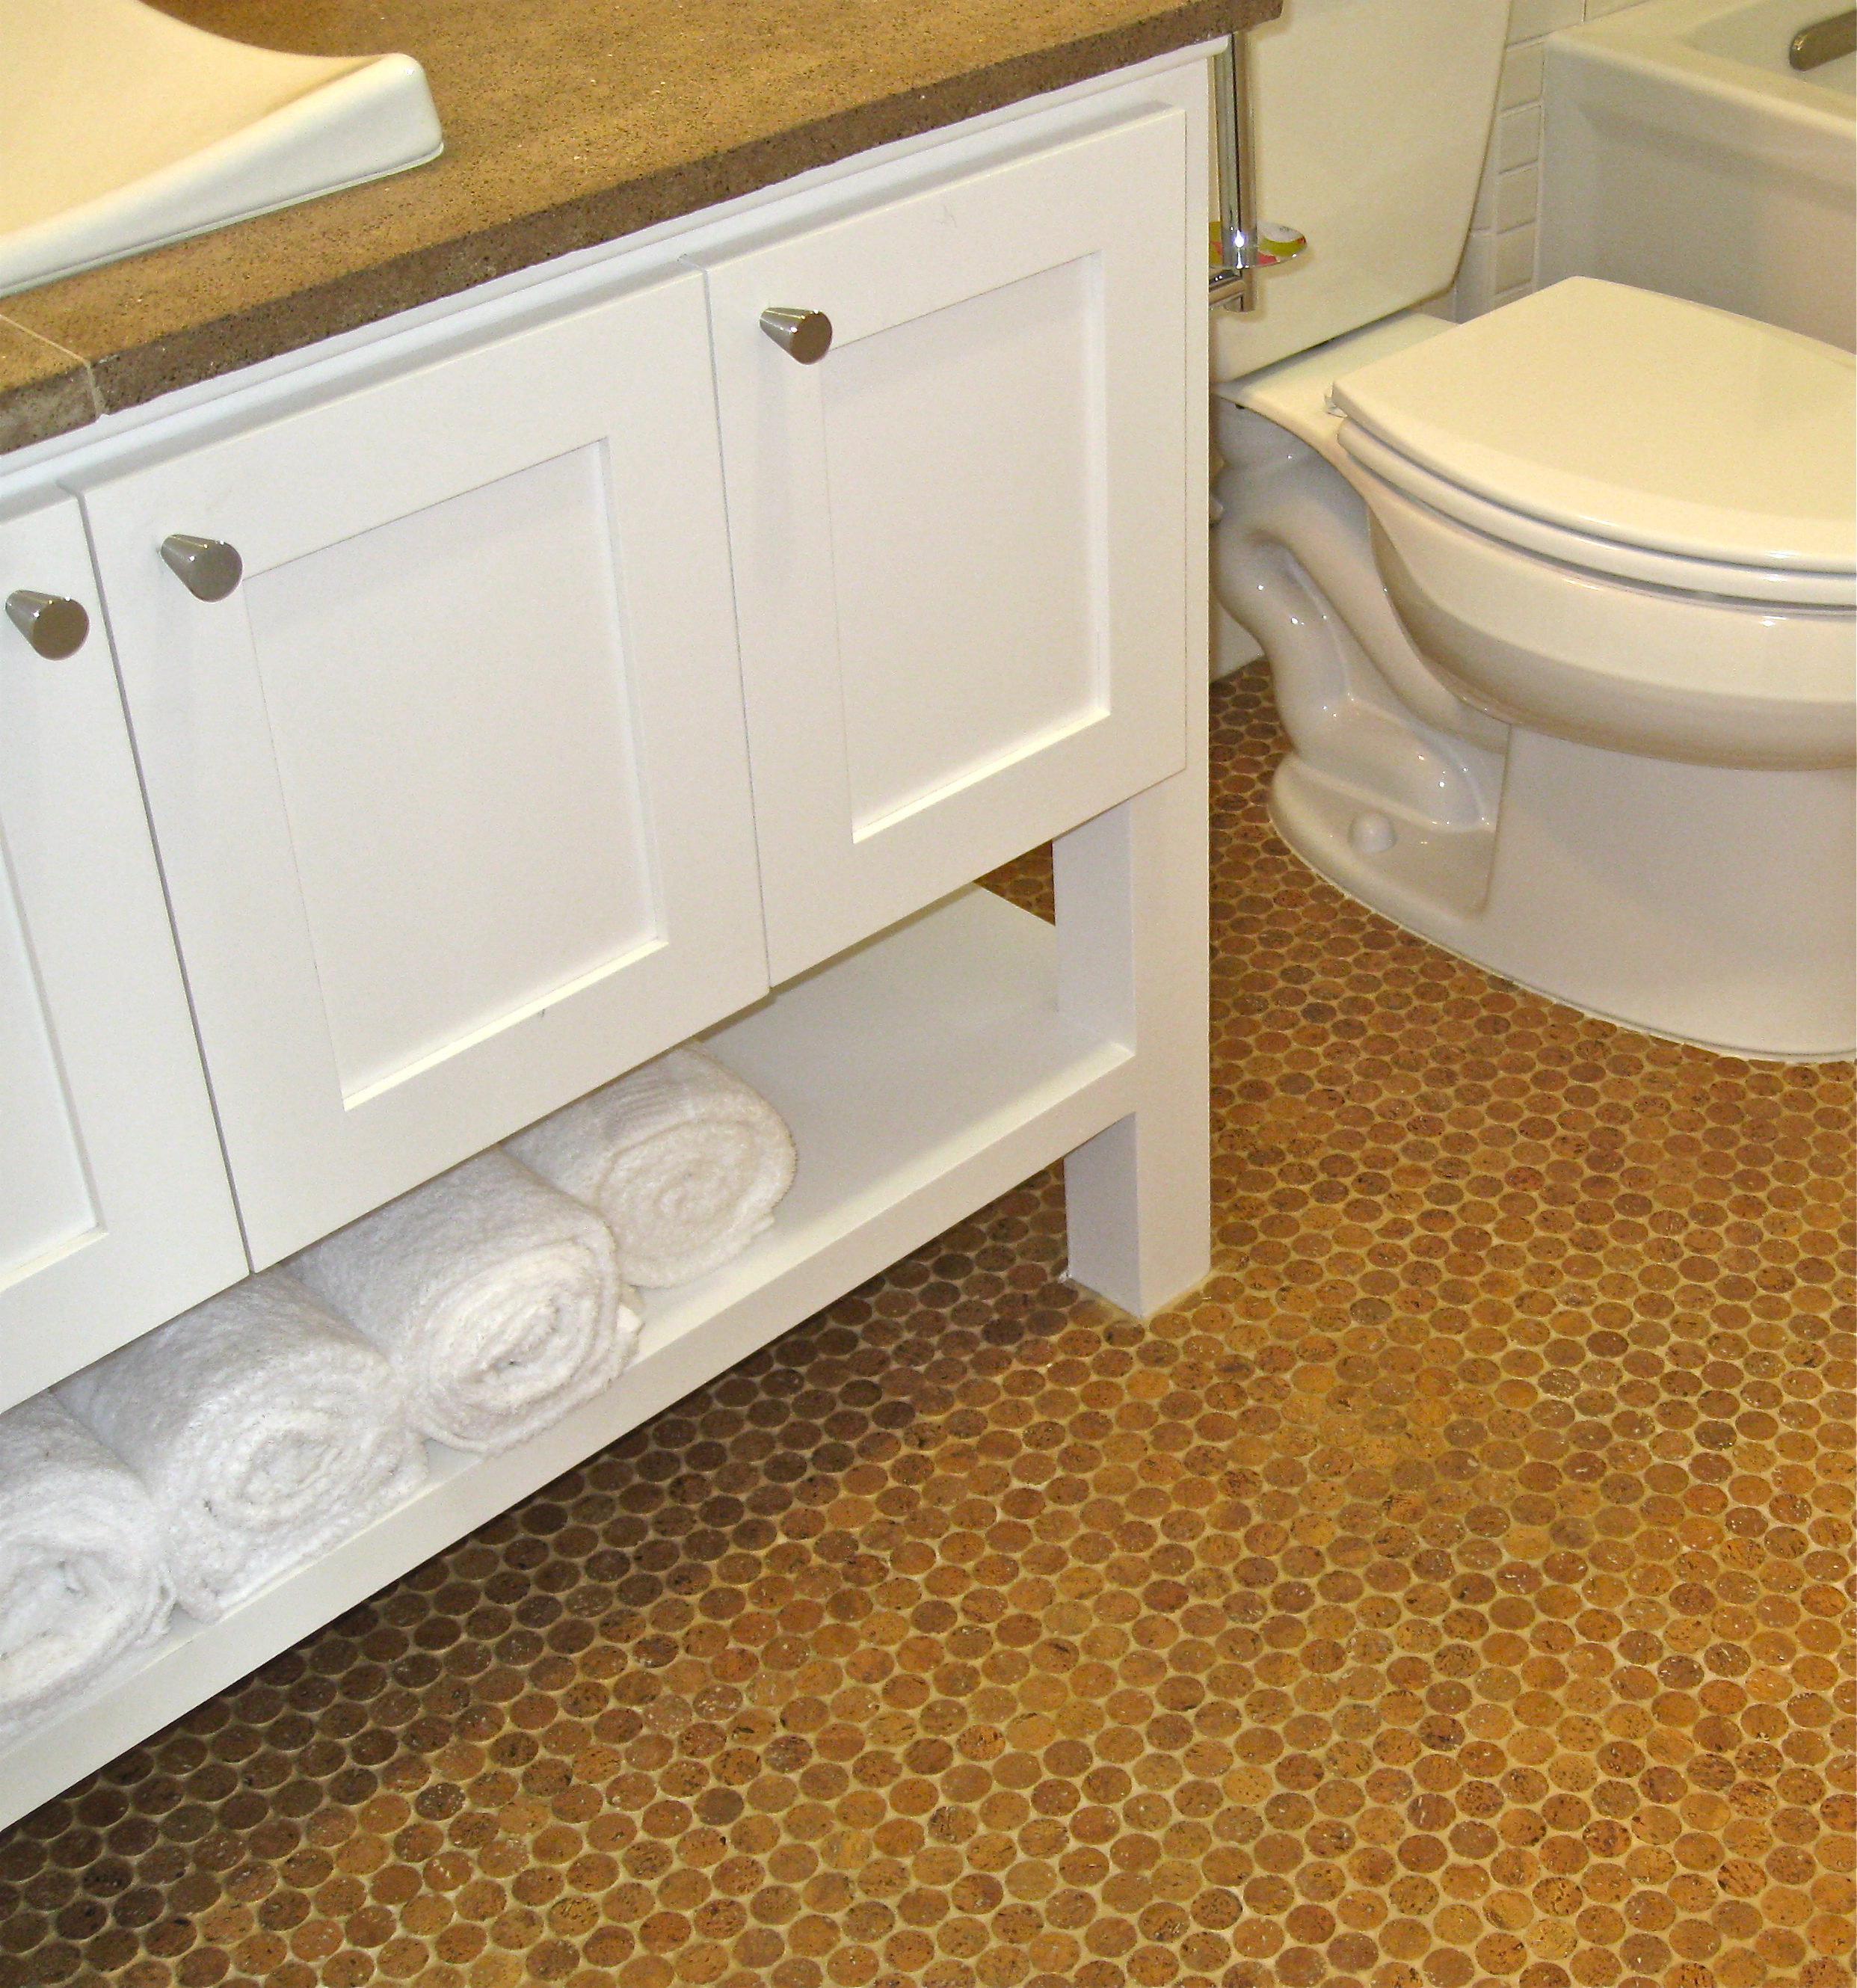 30 available ideas and pictures of cork bathroom flooring for Unusual bathroom flooring